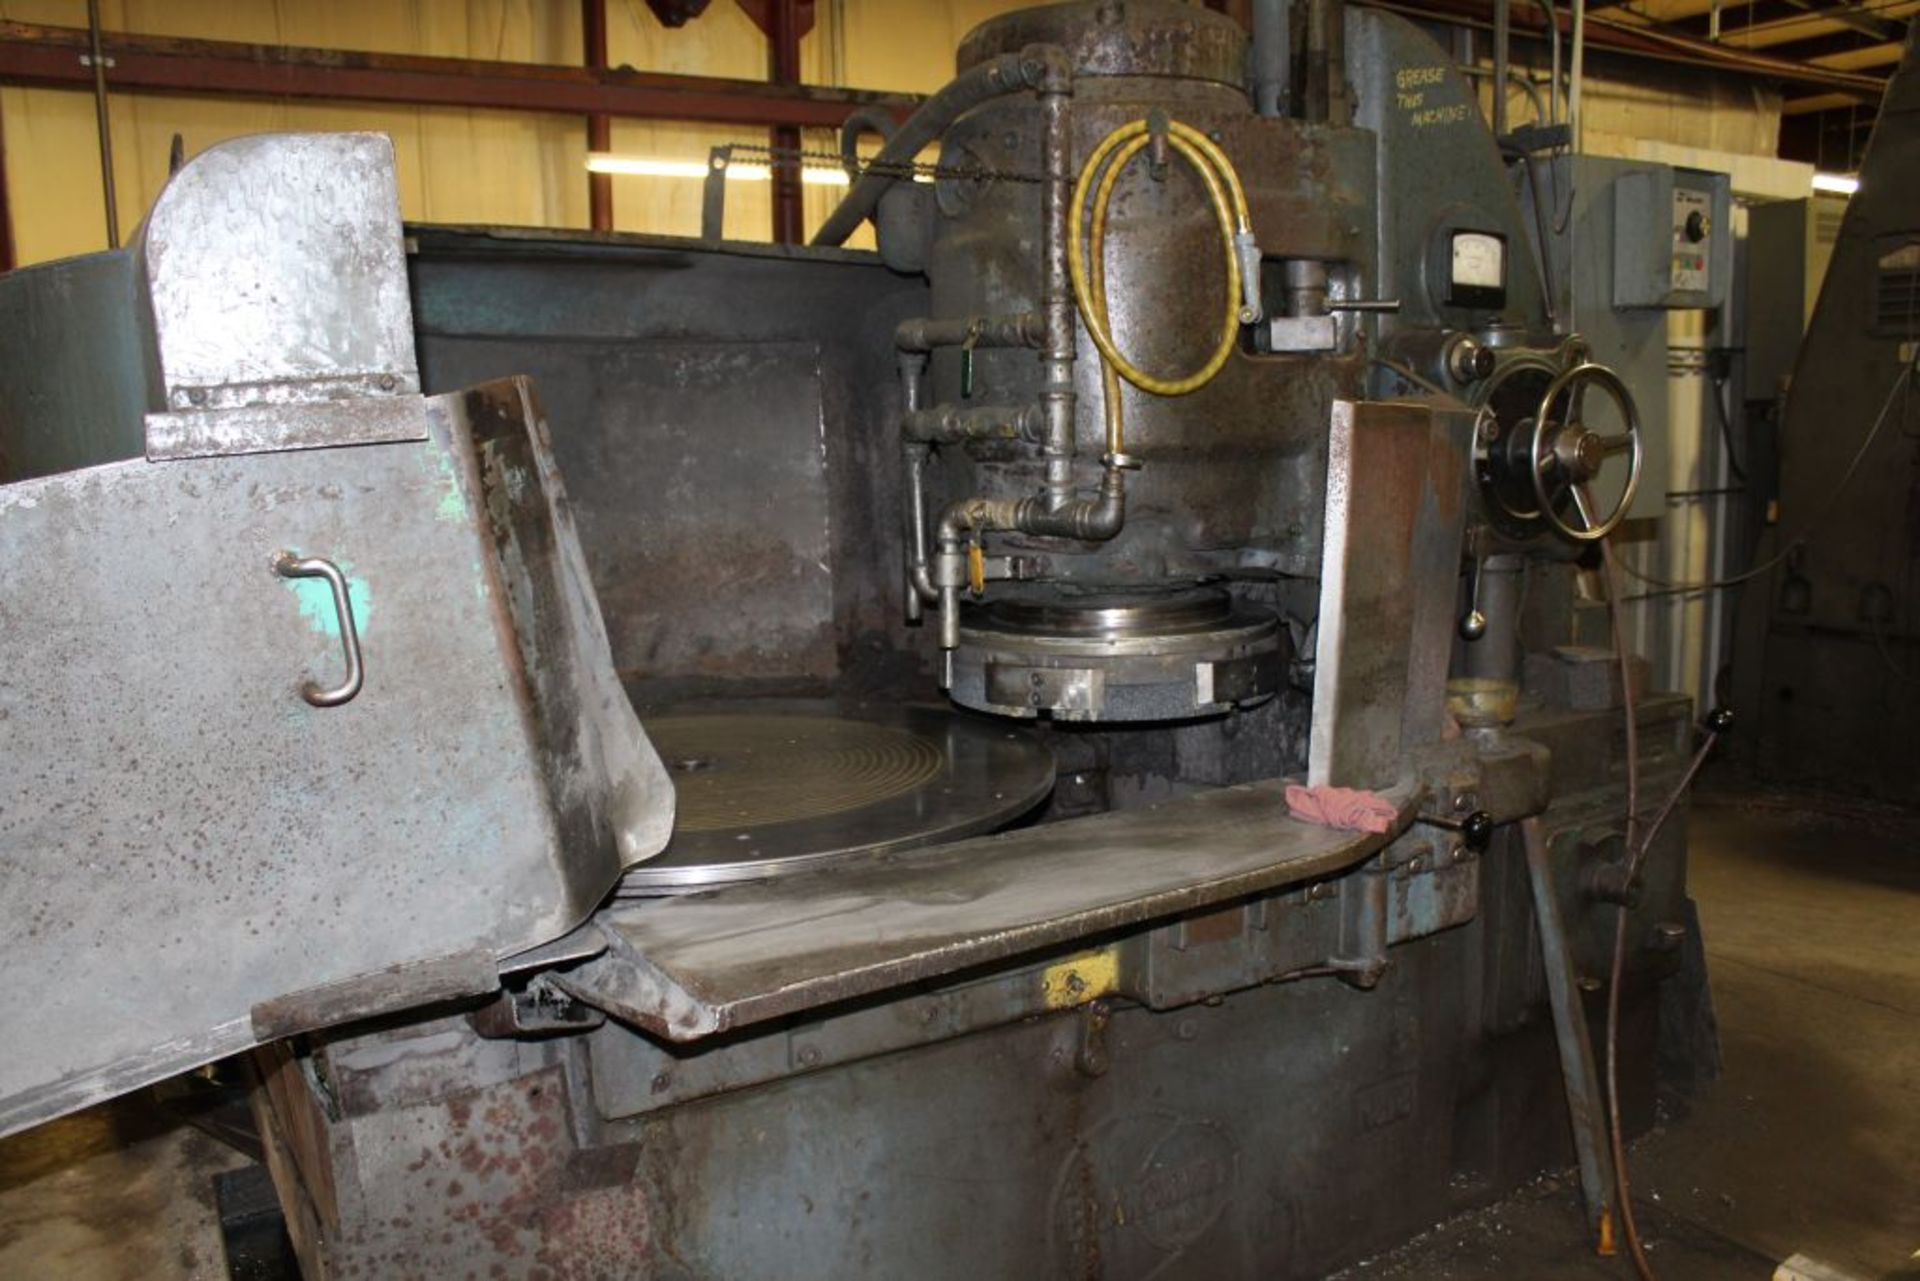 "Lot 030 - Blanchard grinder, model 18, sn 5825, 42"" diameter. Sells with owners confirmation."